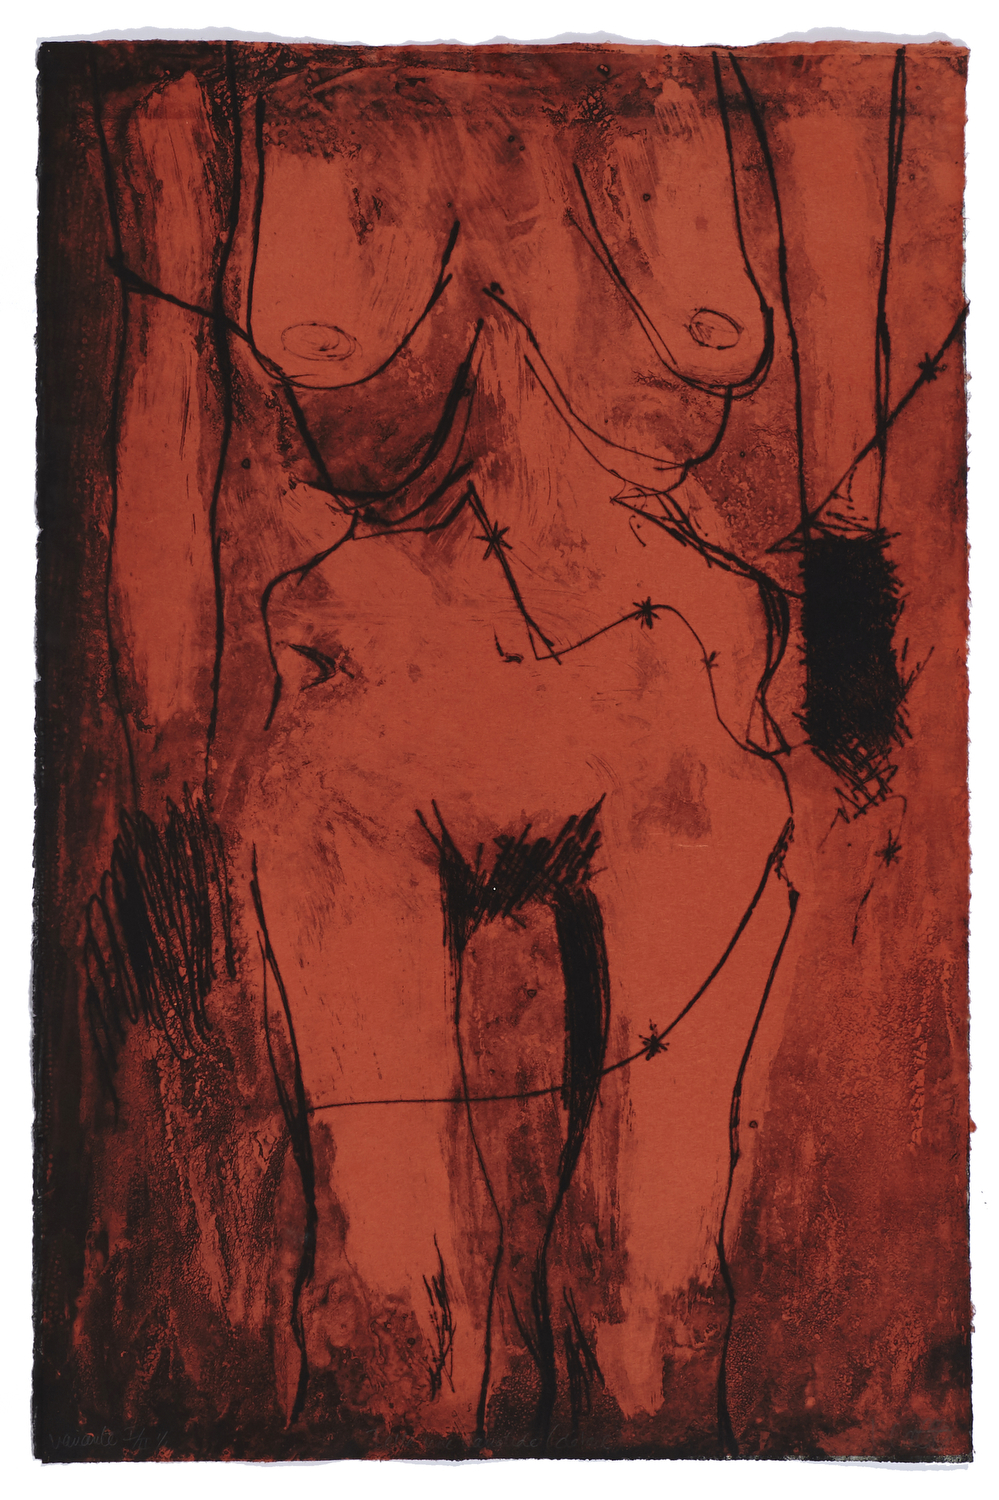 Telle une candide    2006 | 90 x 60 cm | Eau-forte, dry point and chine collé